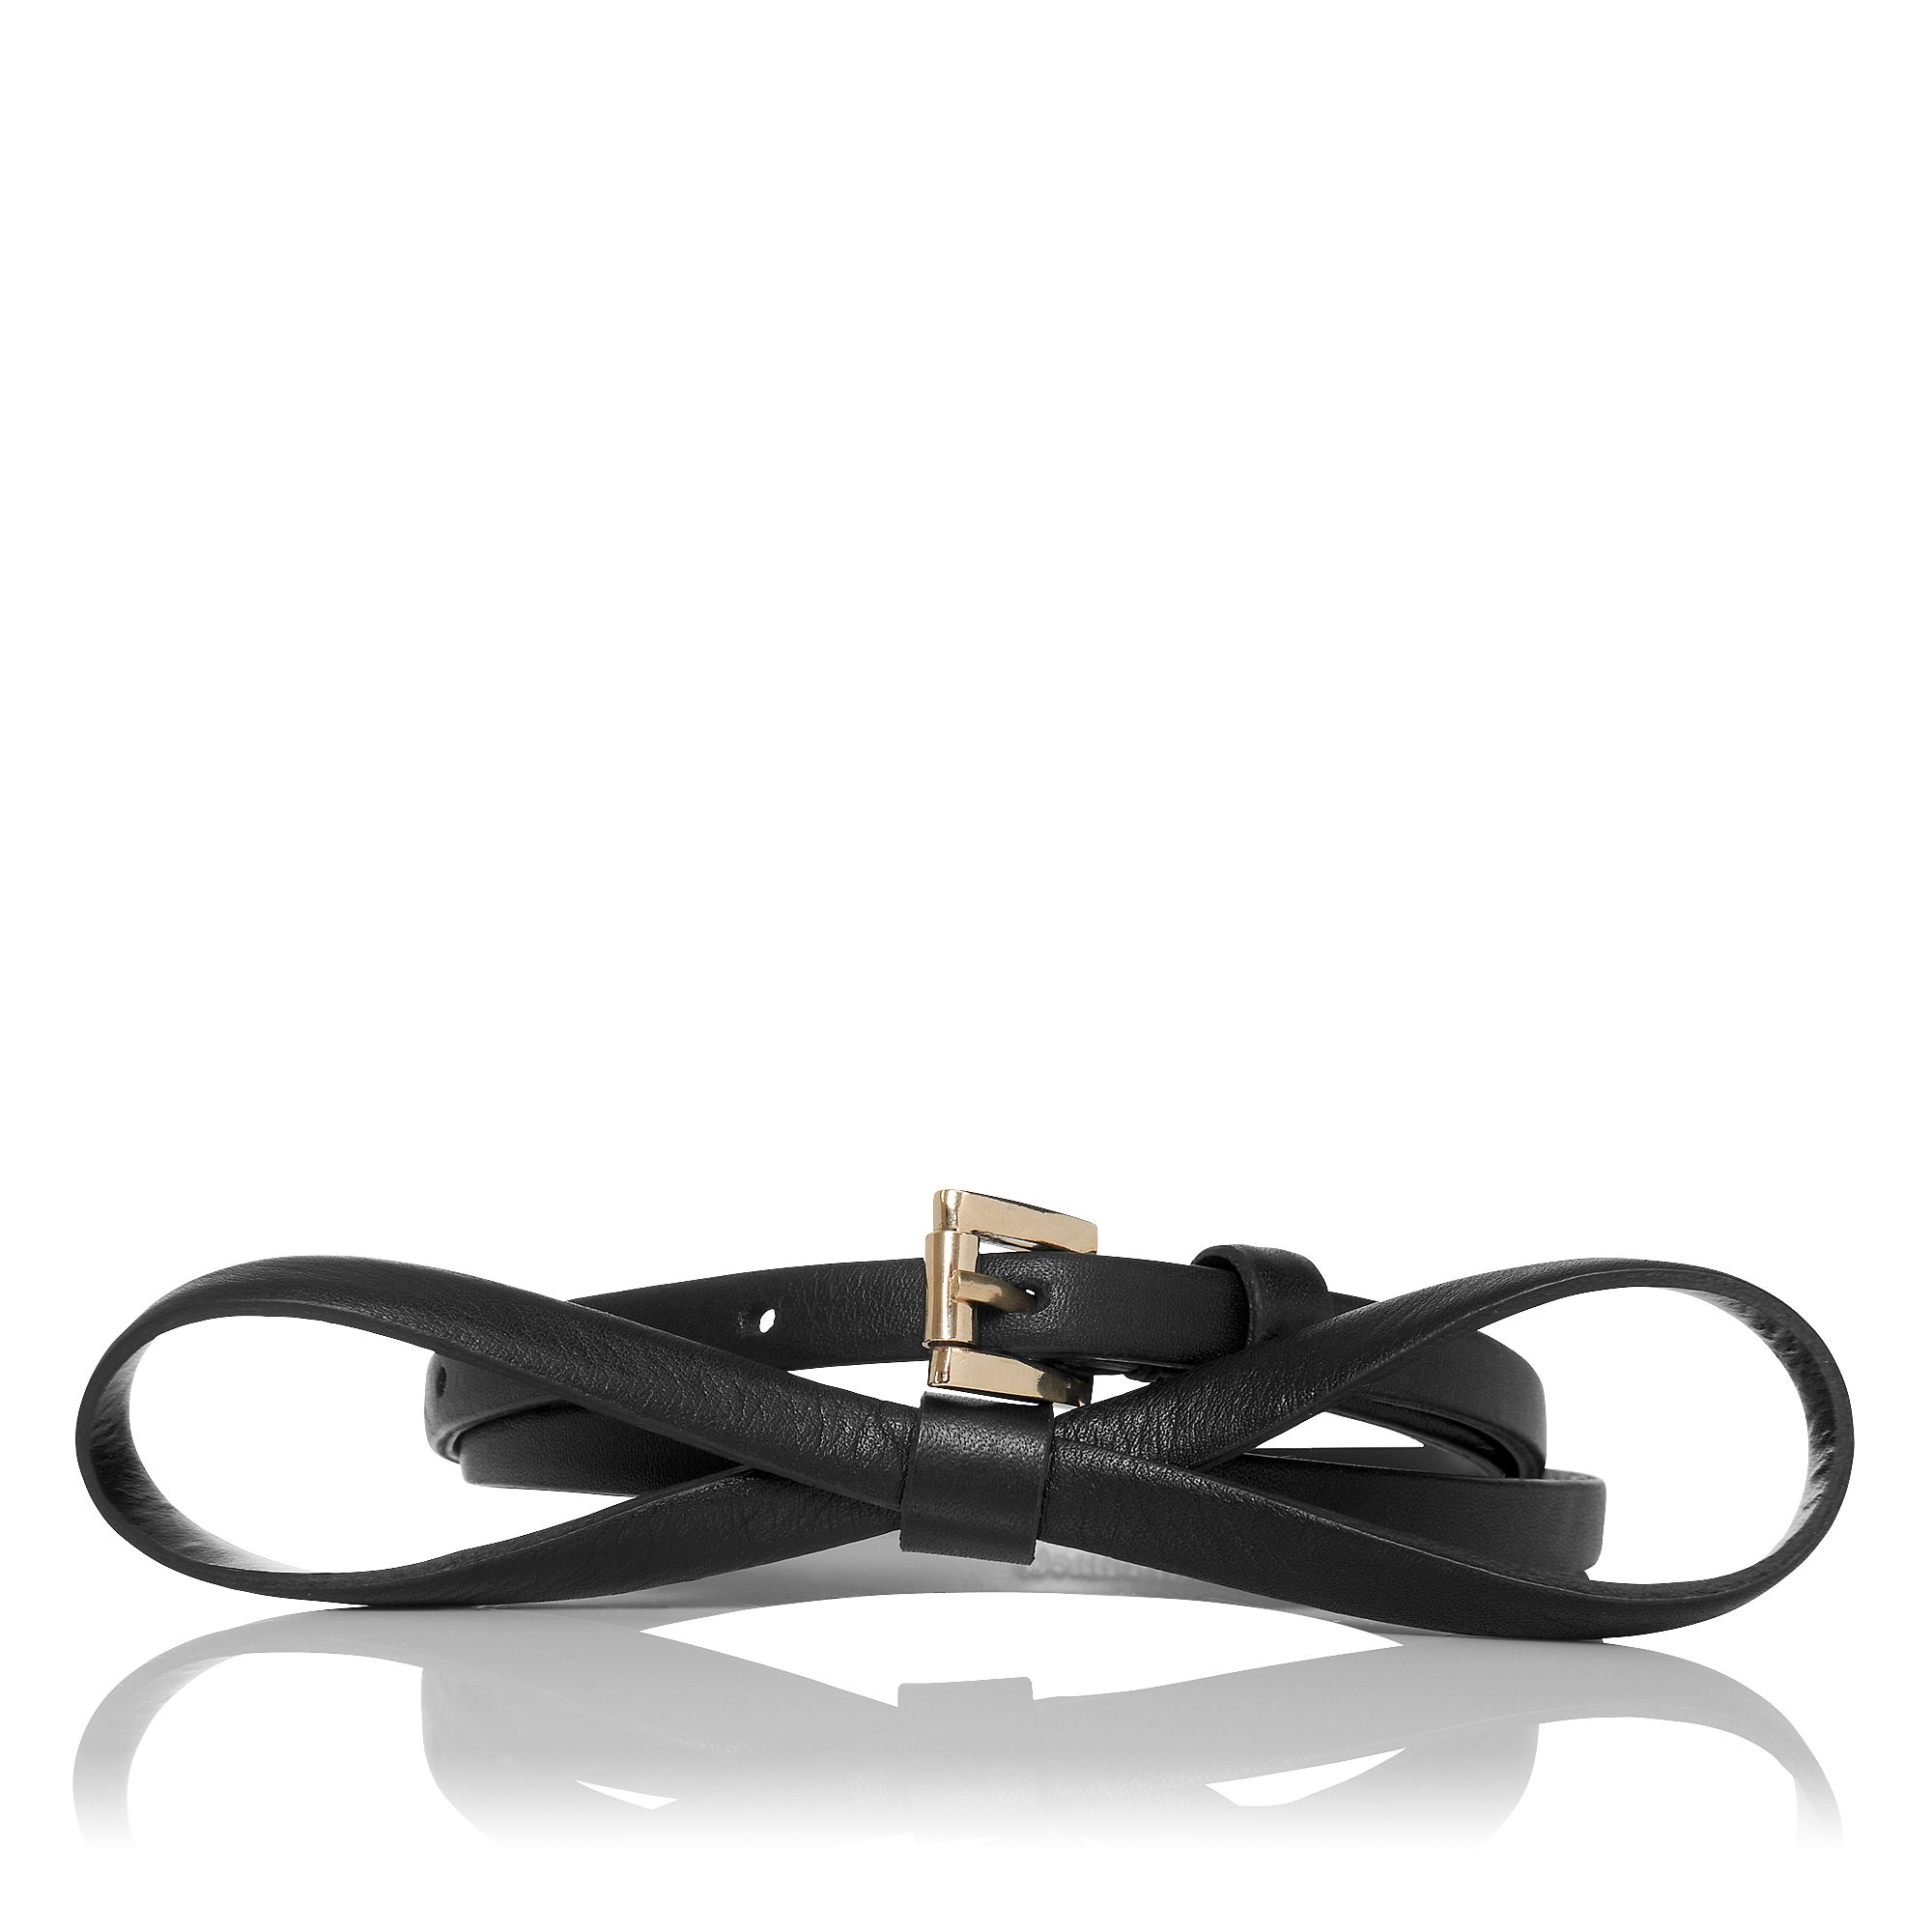 Pam leather skinny belt